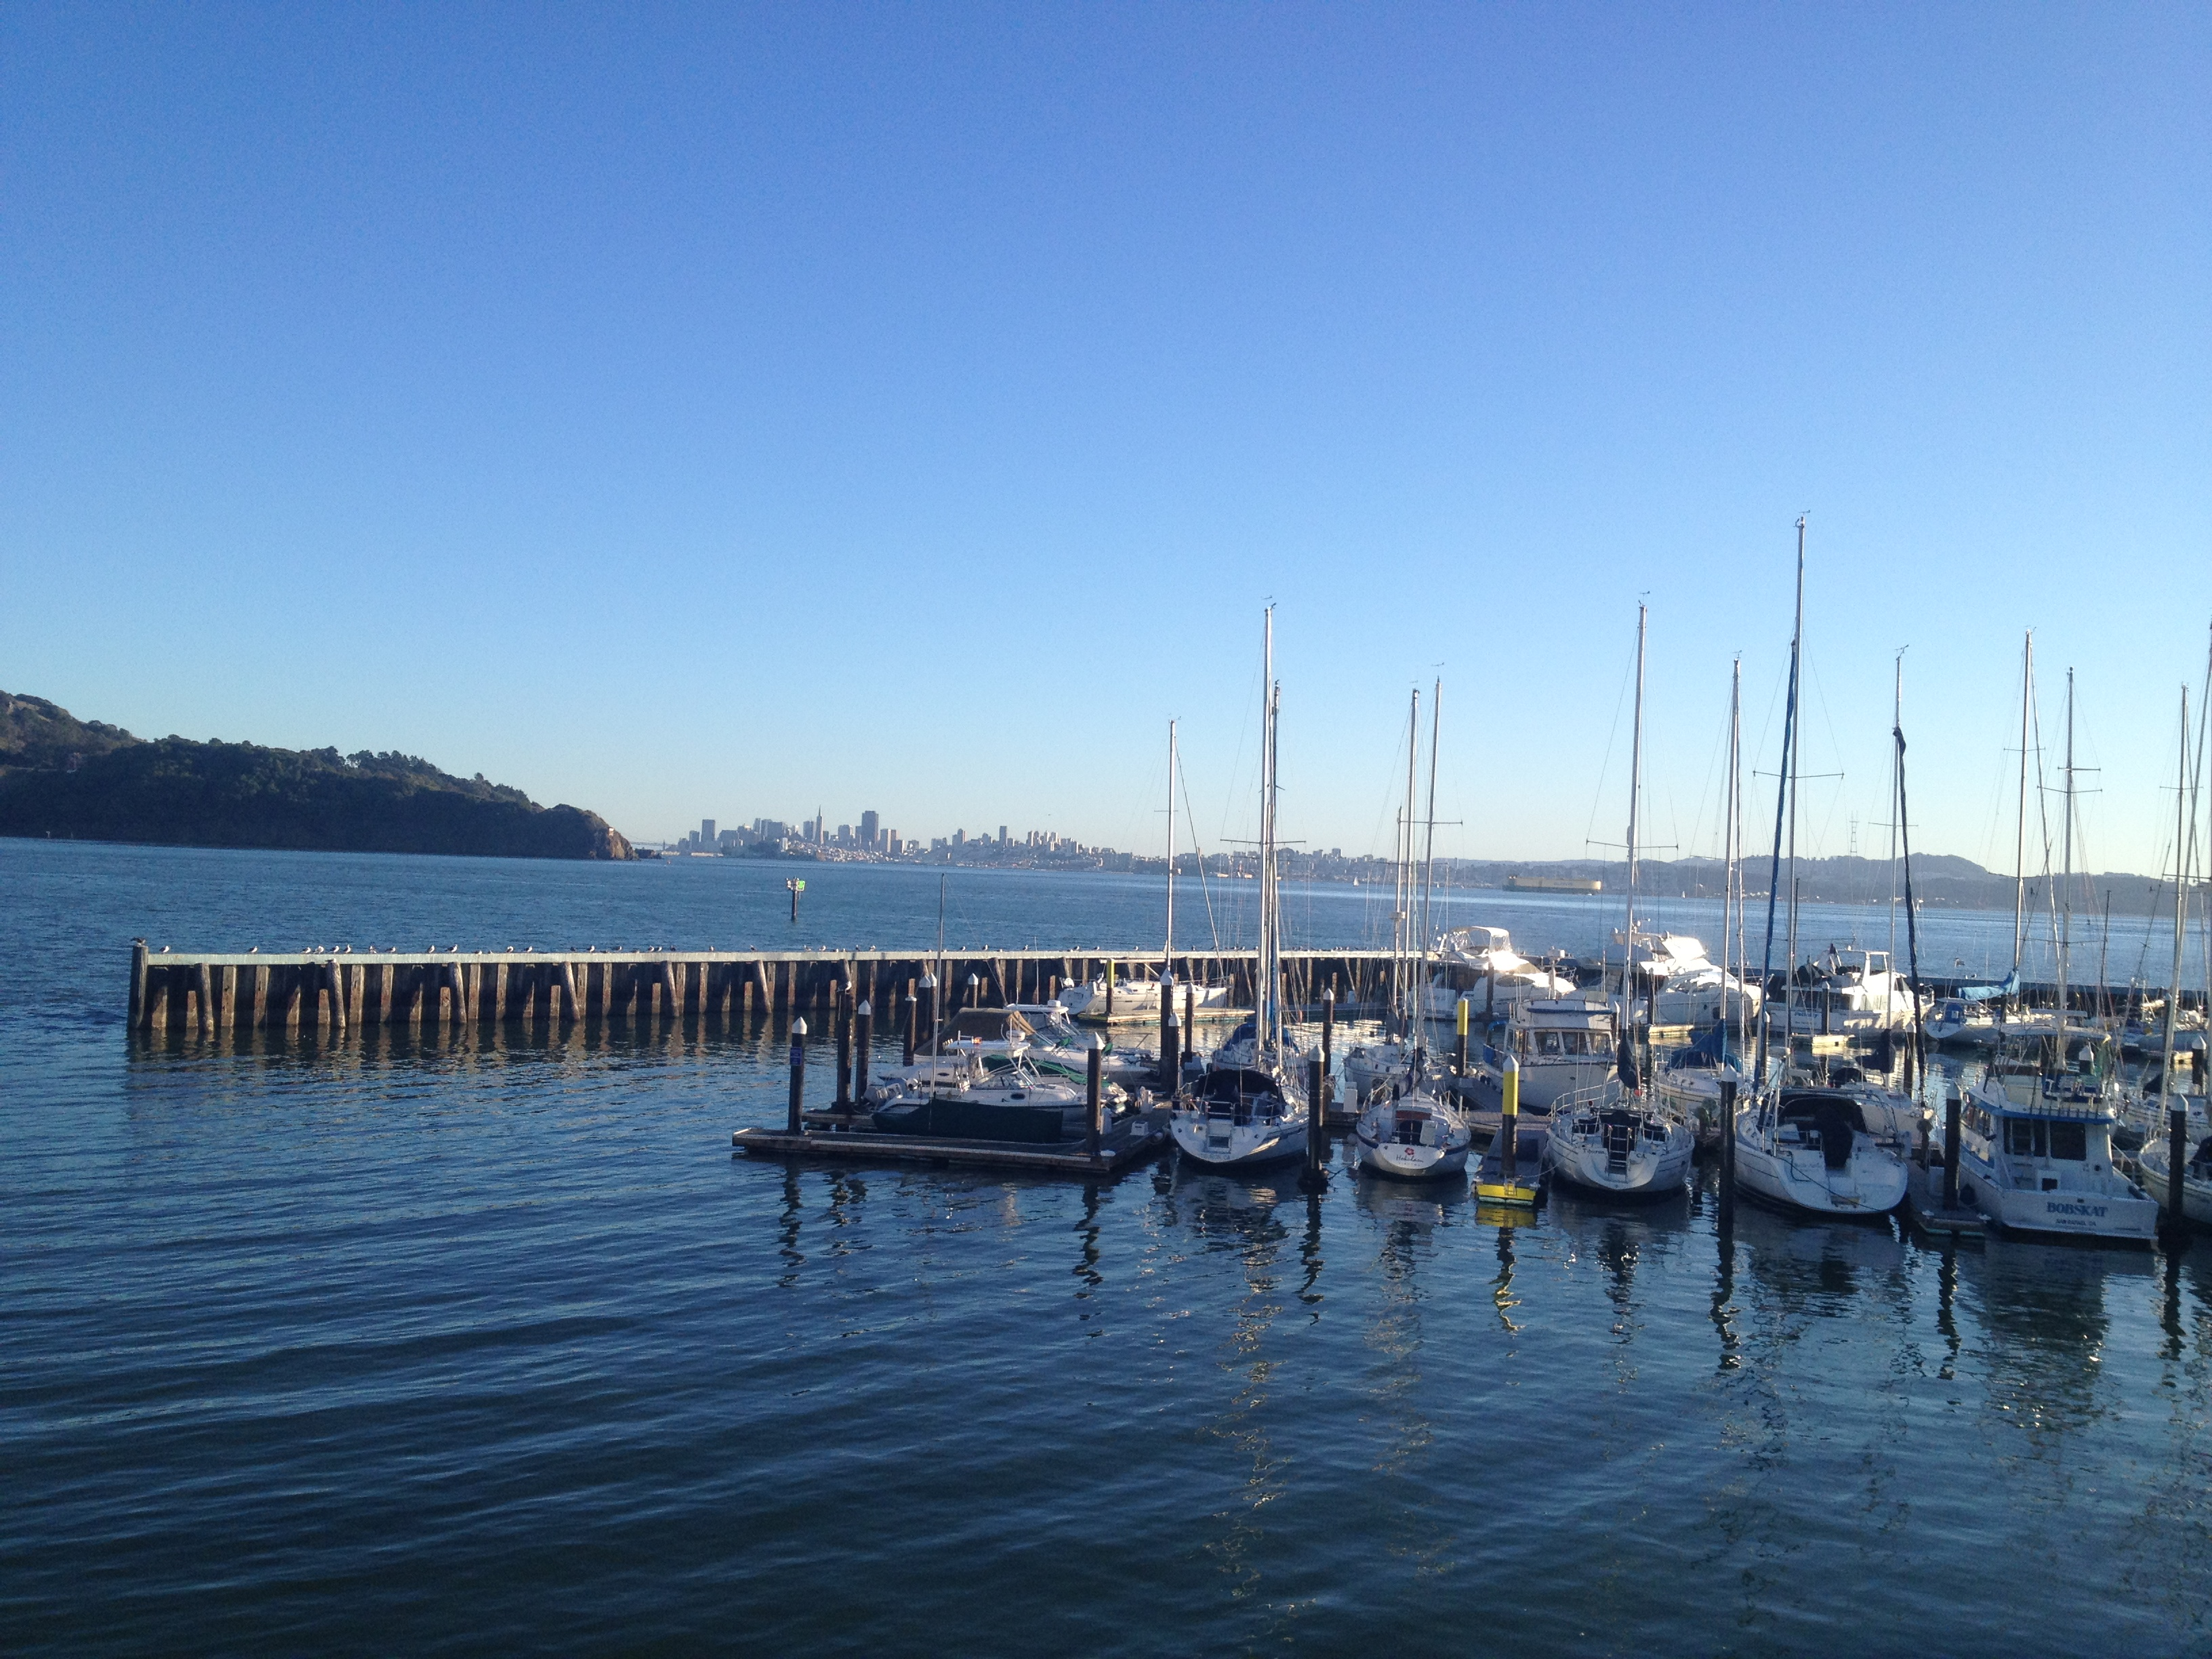 Boats docked on San Francisco Bay in Sausalito Harbor